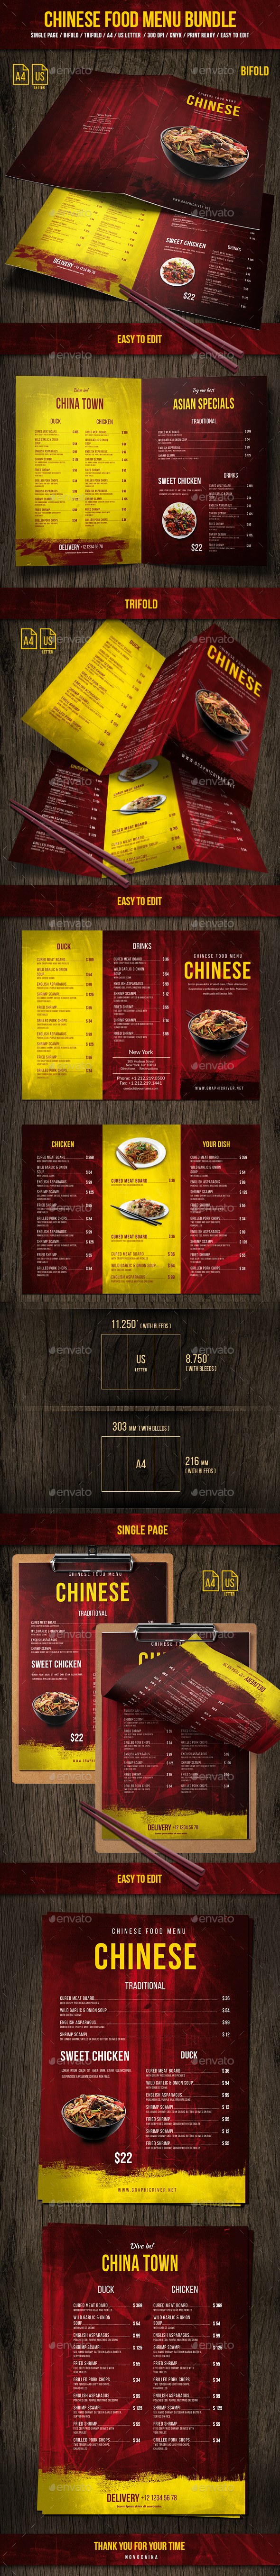 Chinese Food Menu Bundle - Food Menus Print Templates